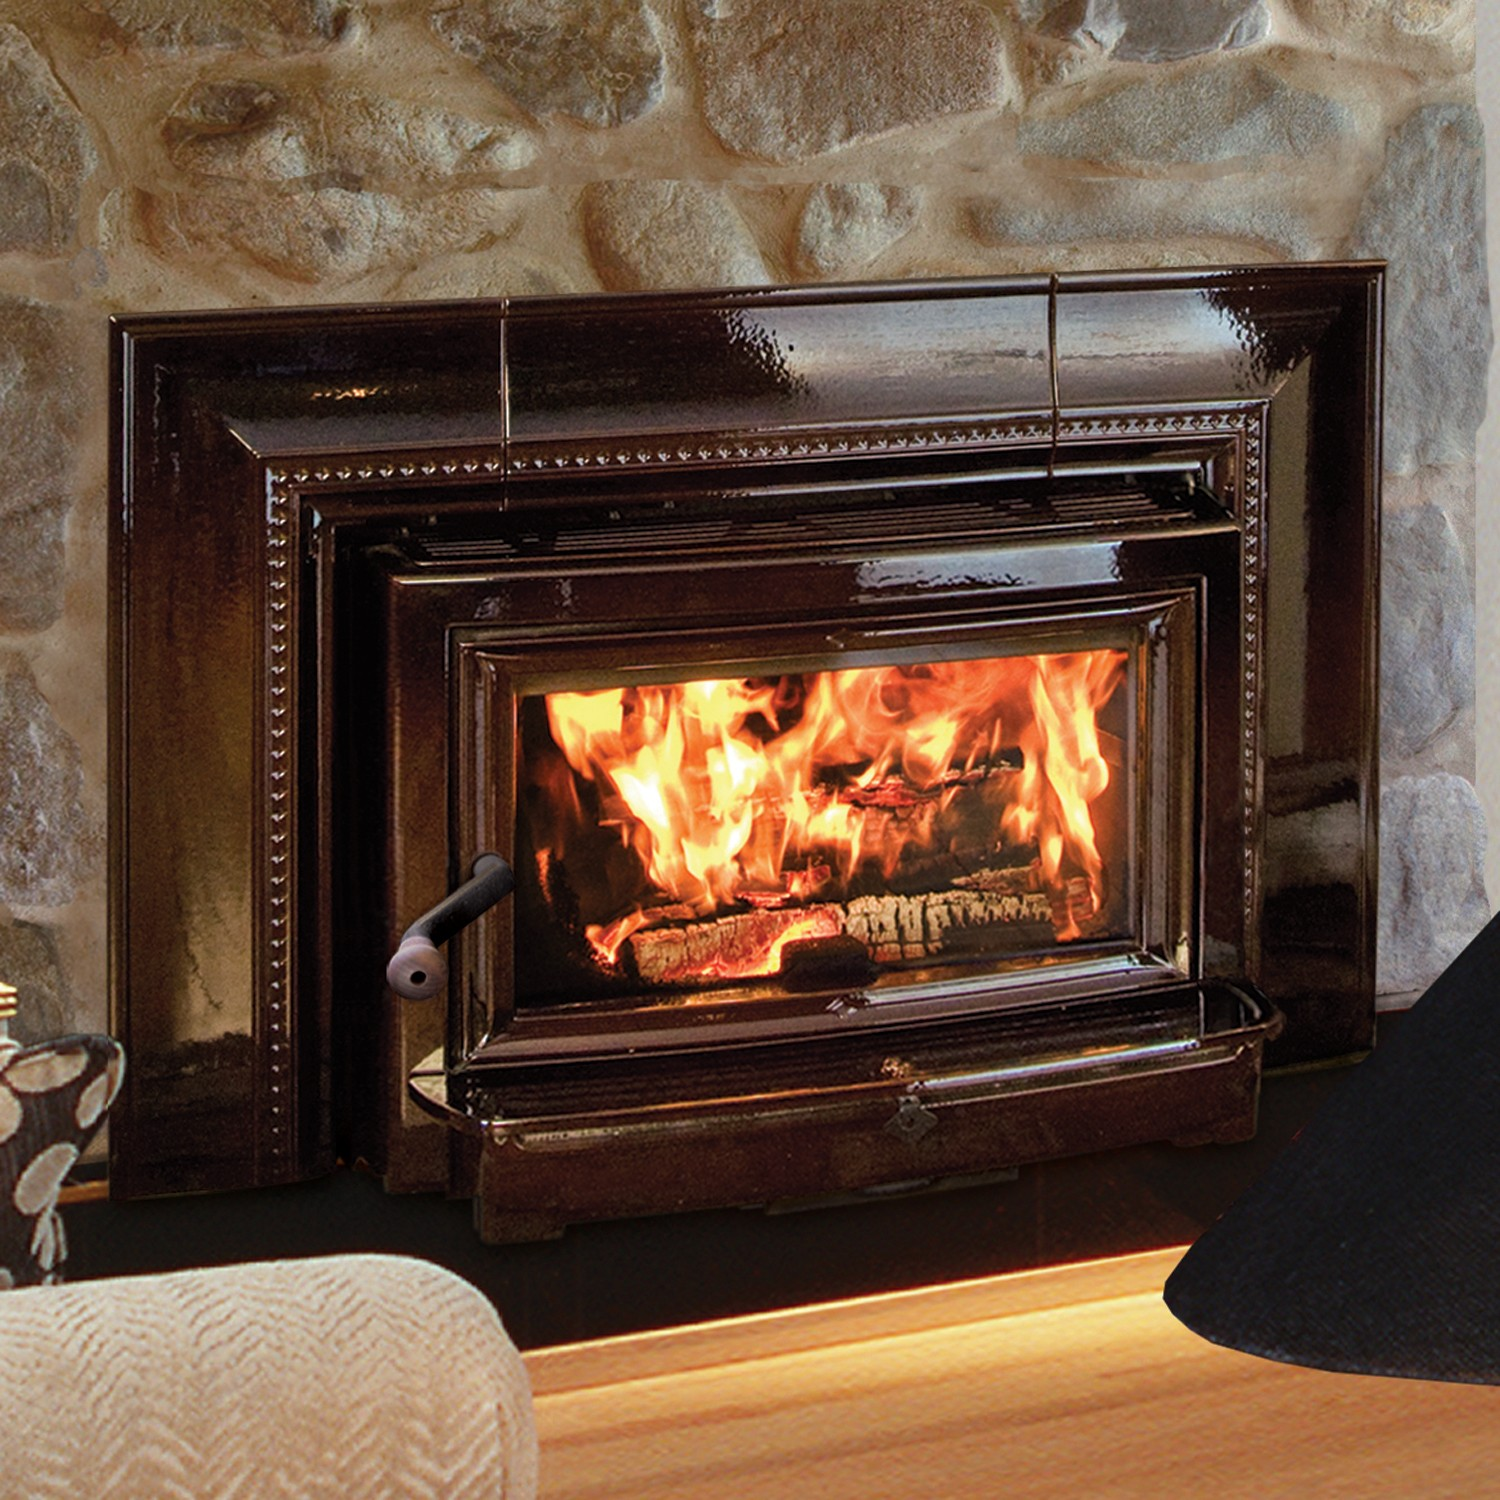 Hearthstone Cldesdale wood burning fireplace insert. Expansive glass, unobstructed view, high power, soapstone-lined, all cast-iron...  numerous virtues for a fireplace insert.  It also features adjustable depth.  Blower and standard panel included.